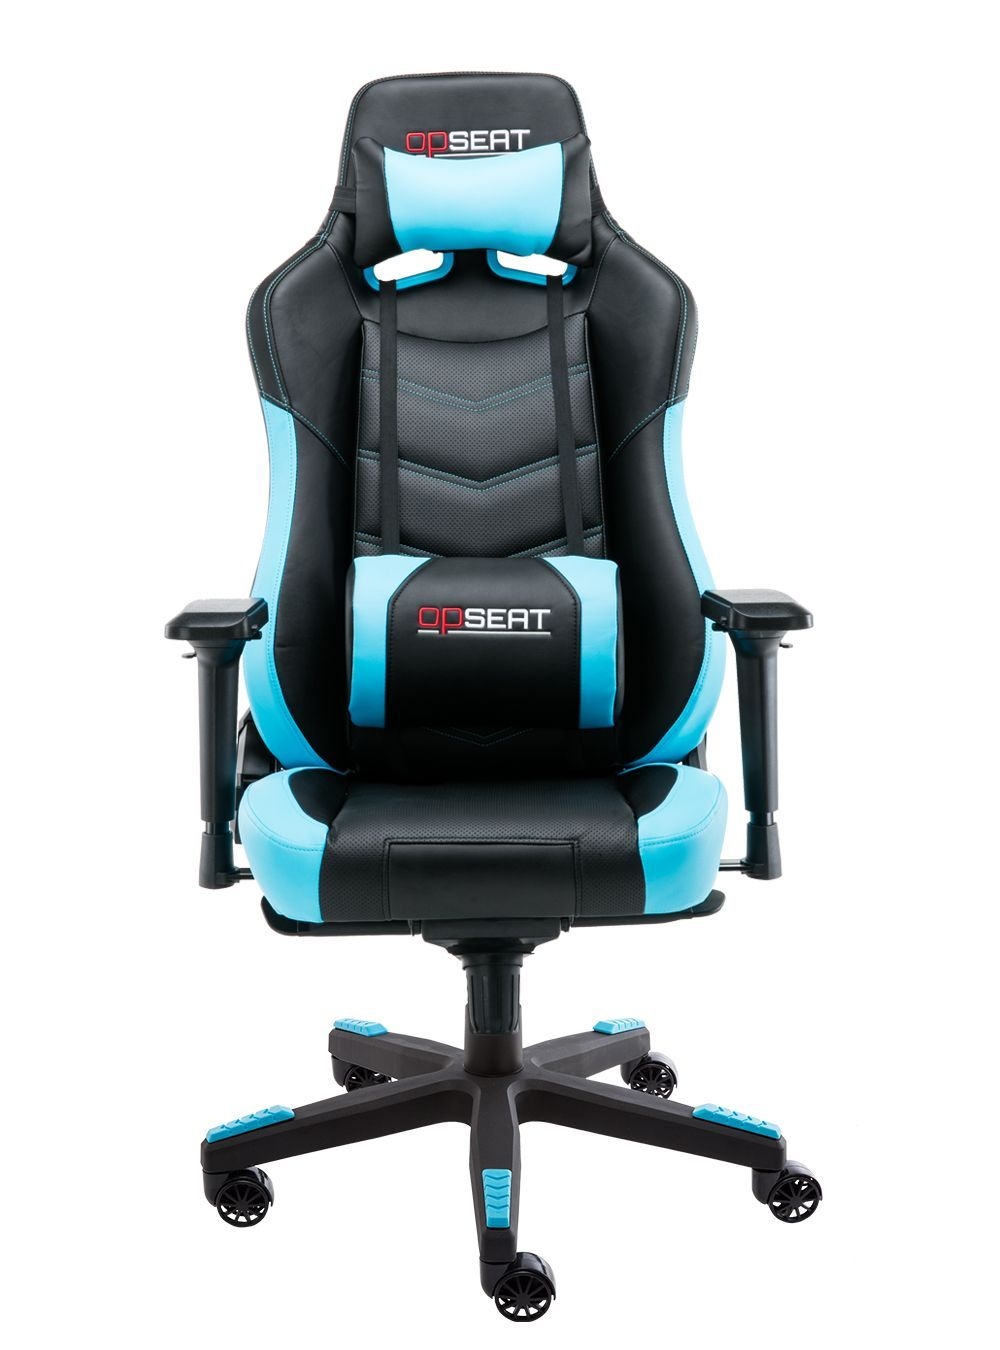 Opseat Grandmaster Series Light Blue Gaming Chair Ultimate Comfort Bigger Ergonomic Design For Any S In 2020 Gaming Chair Light Blue Chair Blue Velvet Dining Chairs